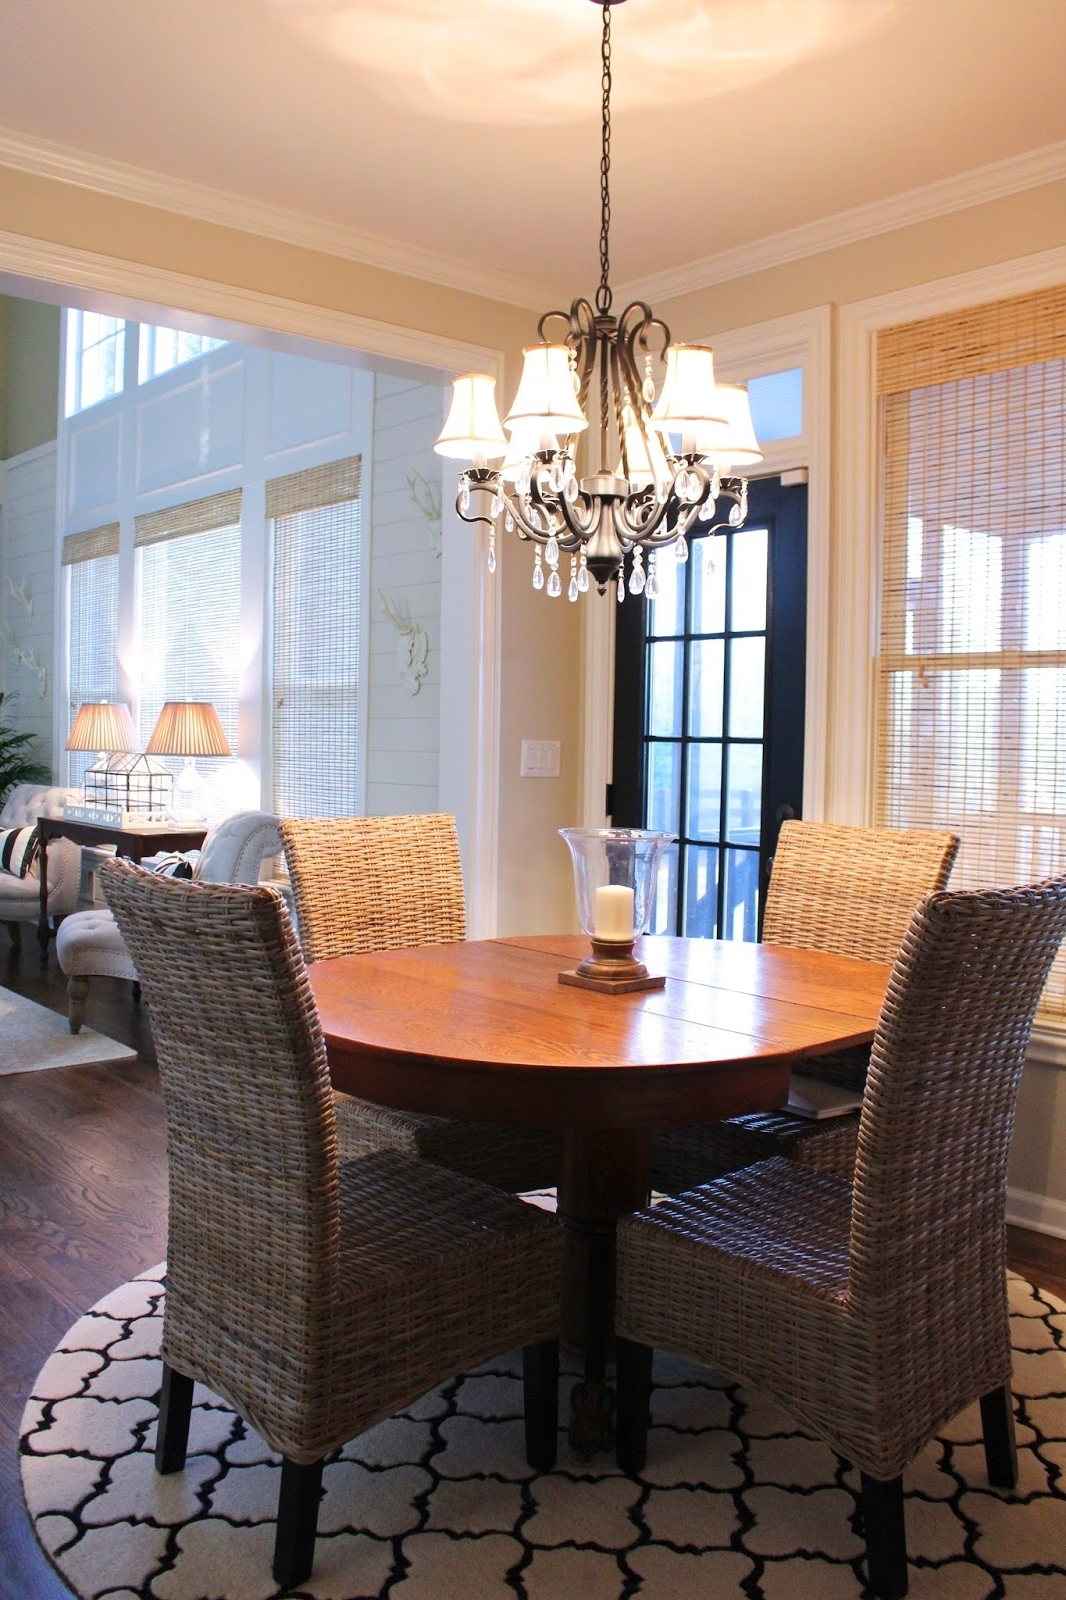 Bamboo Dining Room Chairs And Wood Table (Image 2 of 7)